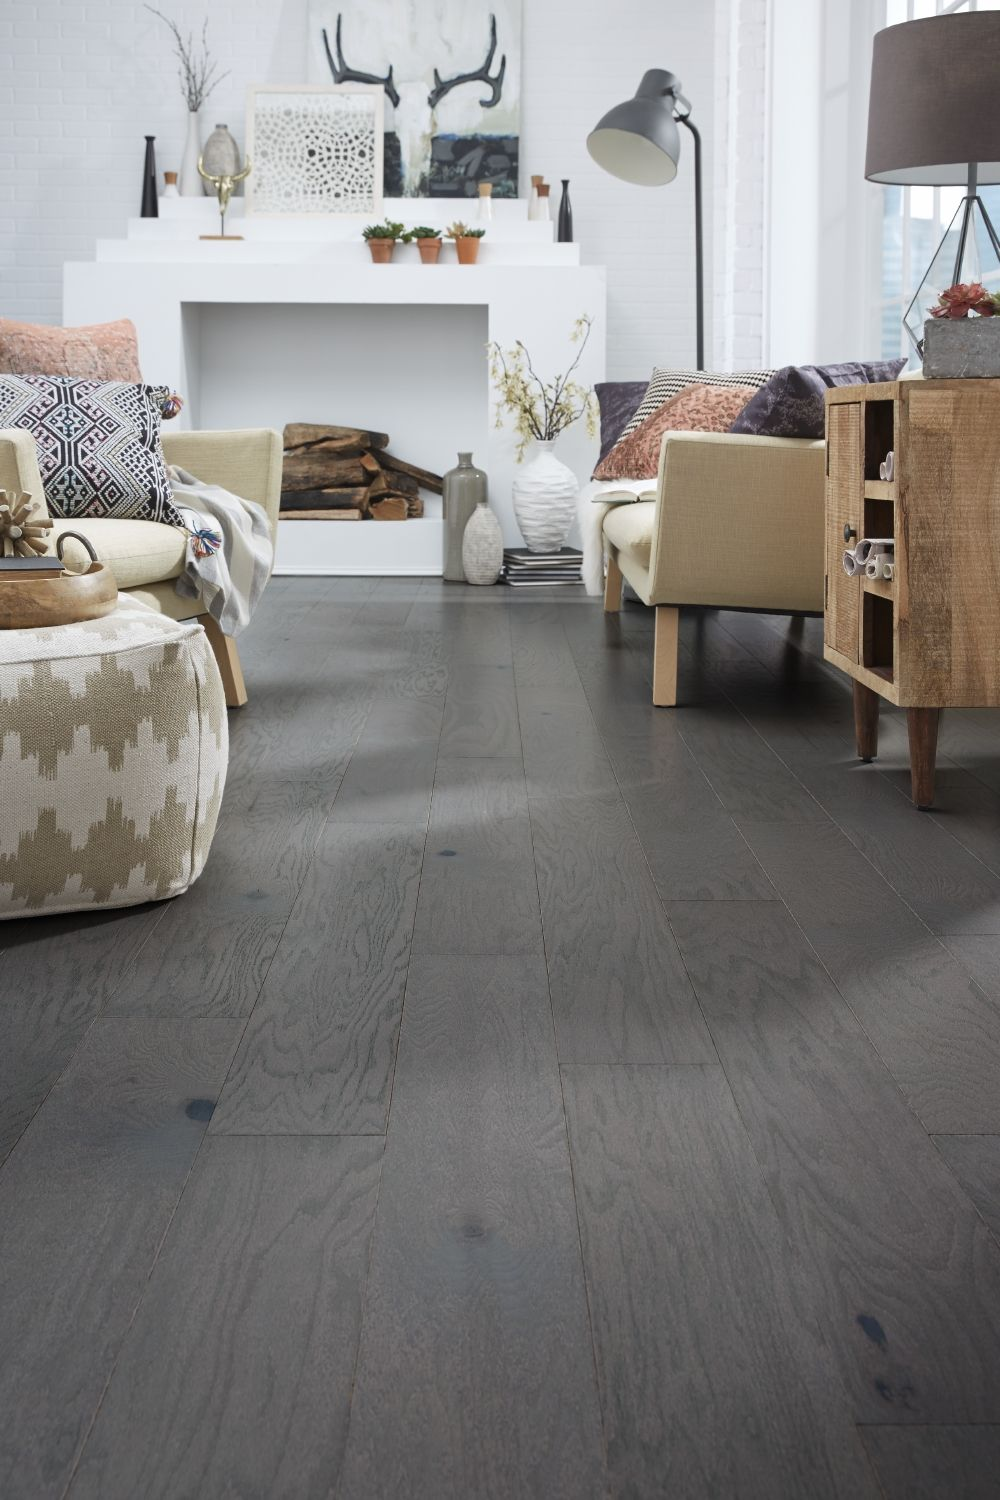 Our new adura avalon luxe vinyl plank flooring a weathered wood a clean nordic look thats light uncomplicated and stunningly simple norwegian oak hardwoods baanklon Choice Image